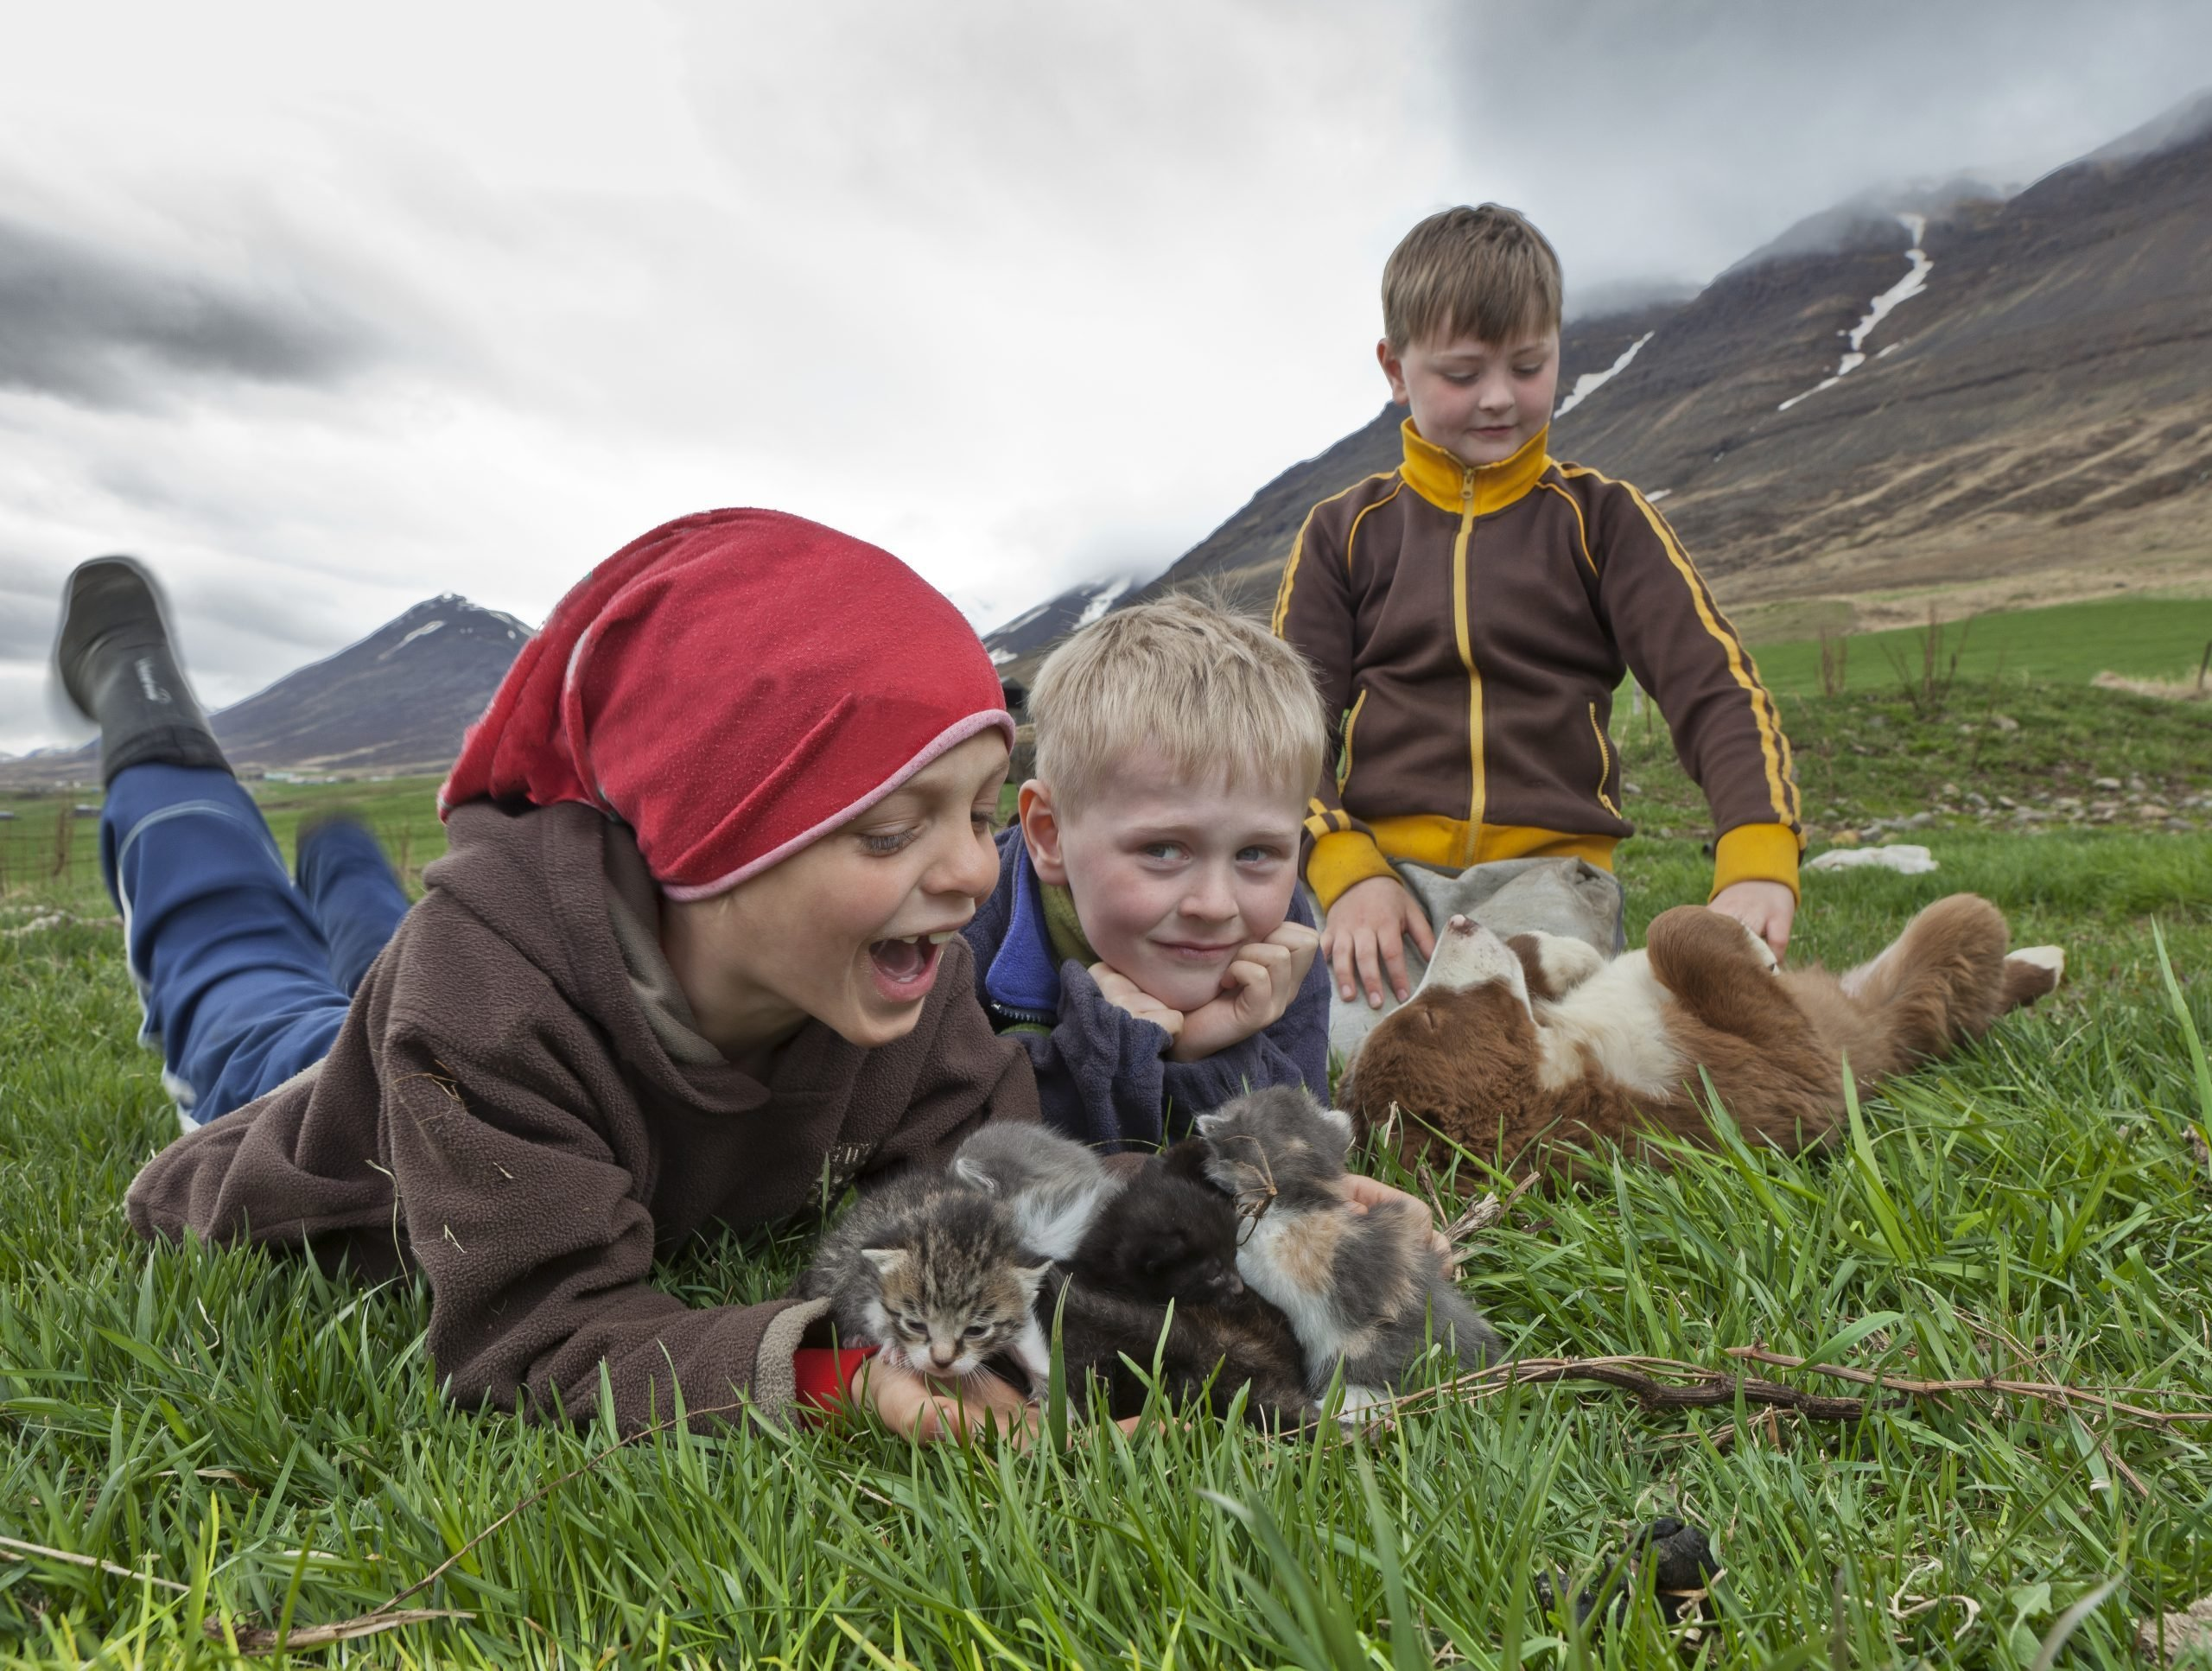 Boys with kittens and puppy on farm, Eyjafjordur, Iceland